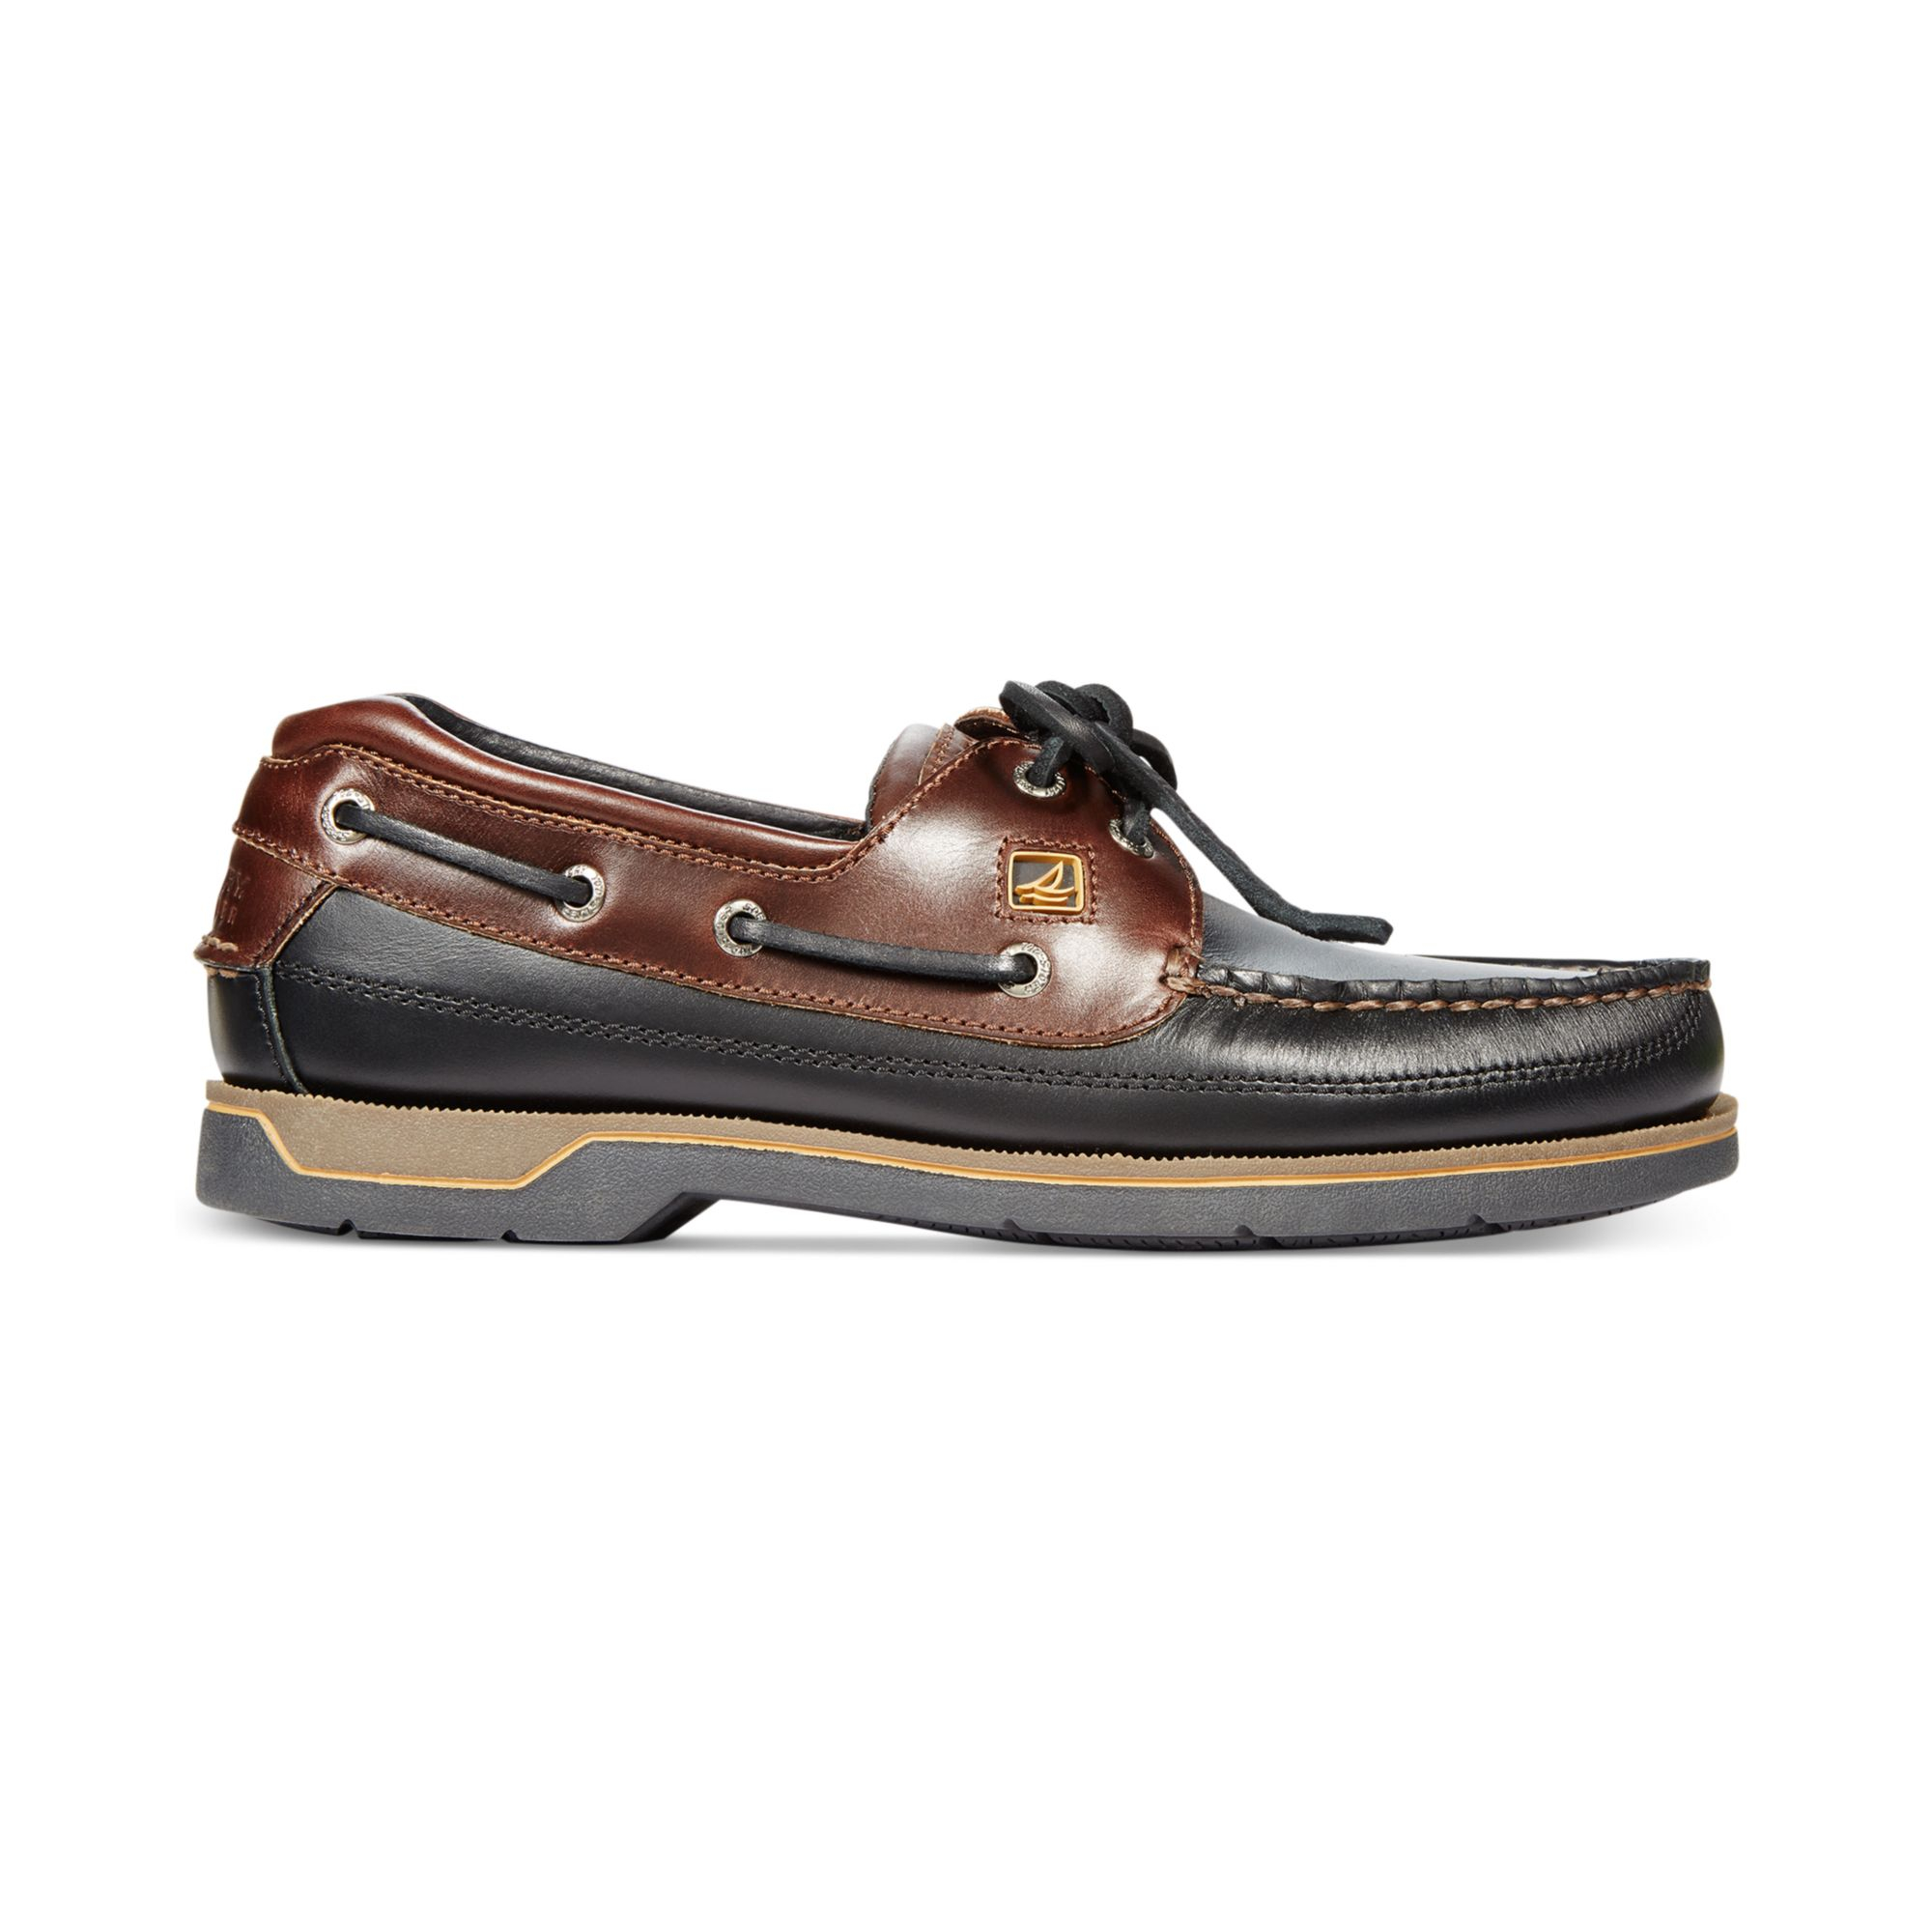 Buy Mio Marino Mens Loafers - Italian Dress Casual Loafers for Men - Slip-on Driving Shoes - in Gift Shoe Bag and other Loafers & Slip-Ons at lockrepnorthrigh.cf Our wide .